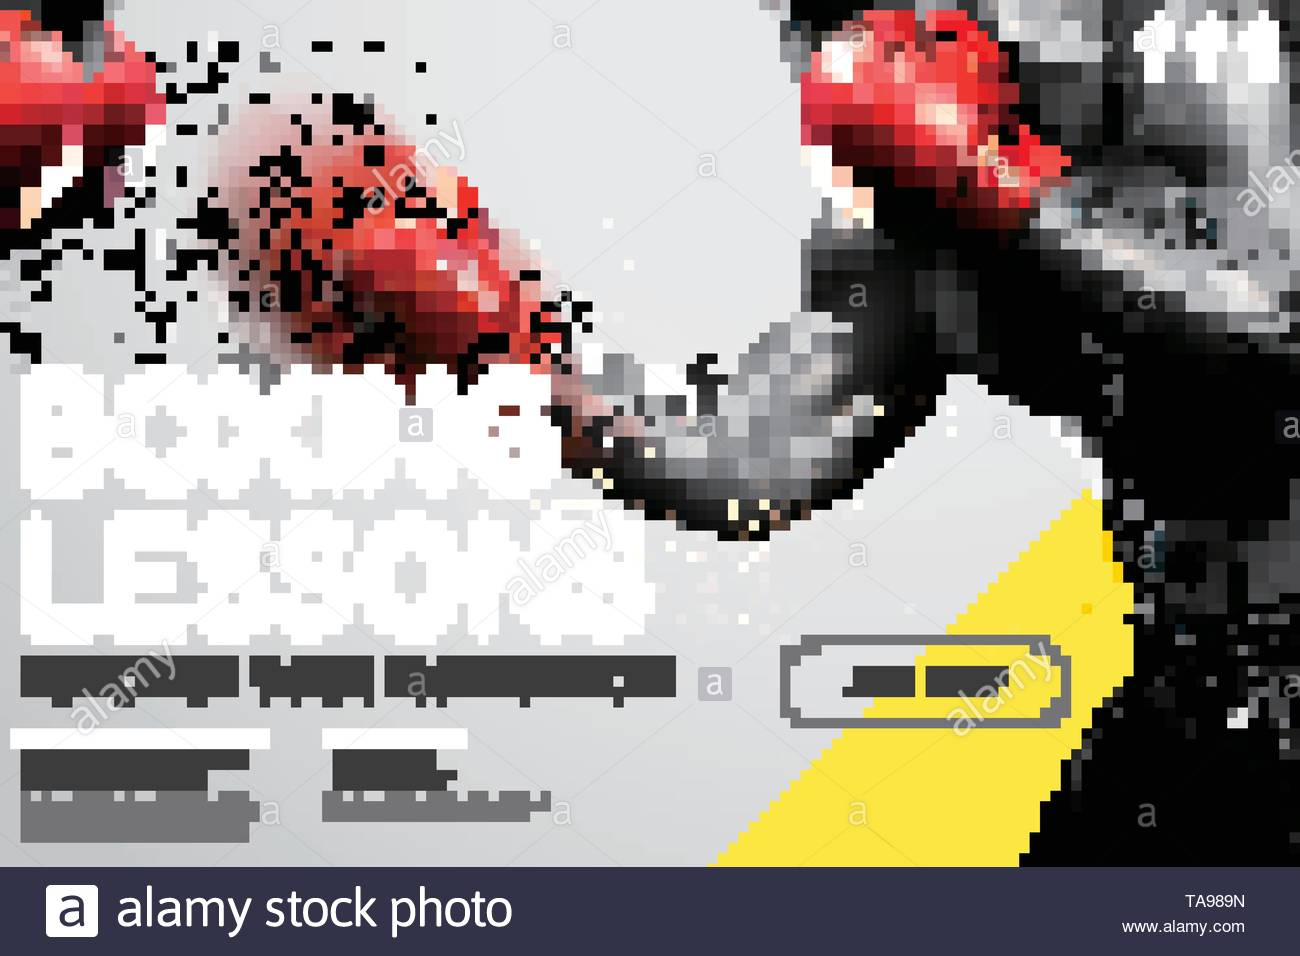 Boxing lessons website design with strong boxer throwing hook in 3d illustration, grey and yellow tone - Stock Image